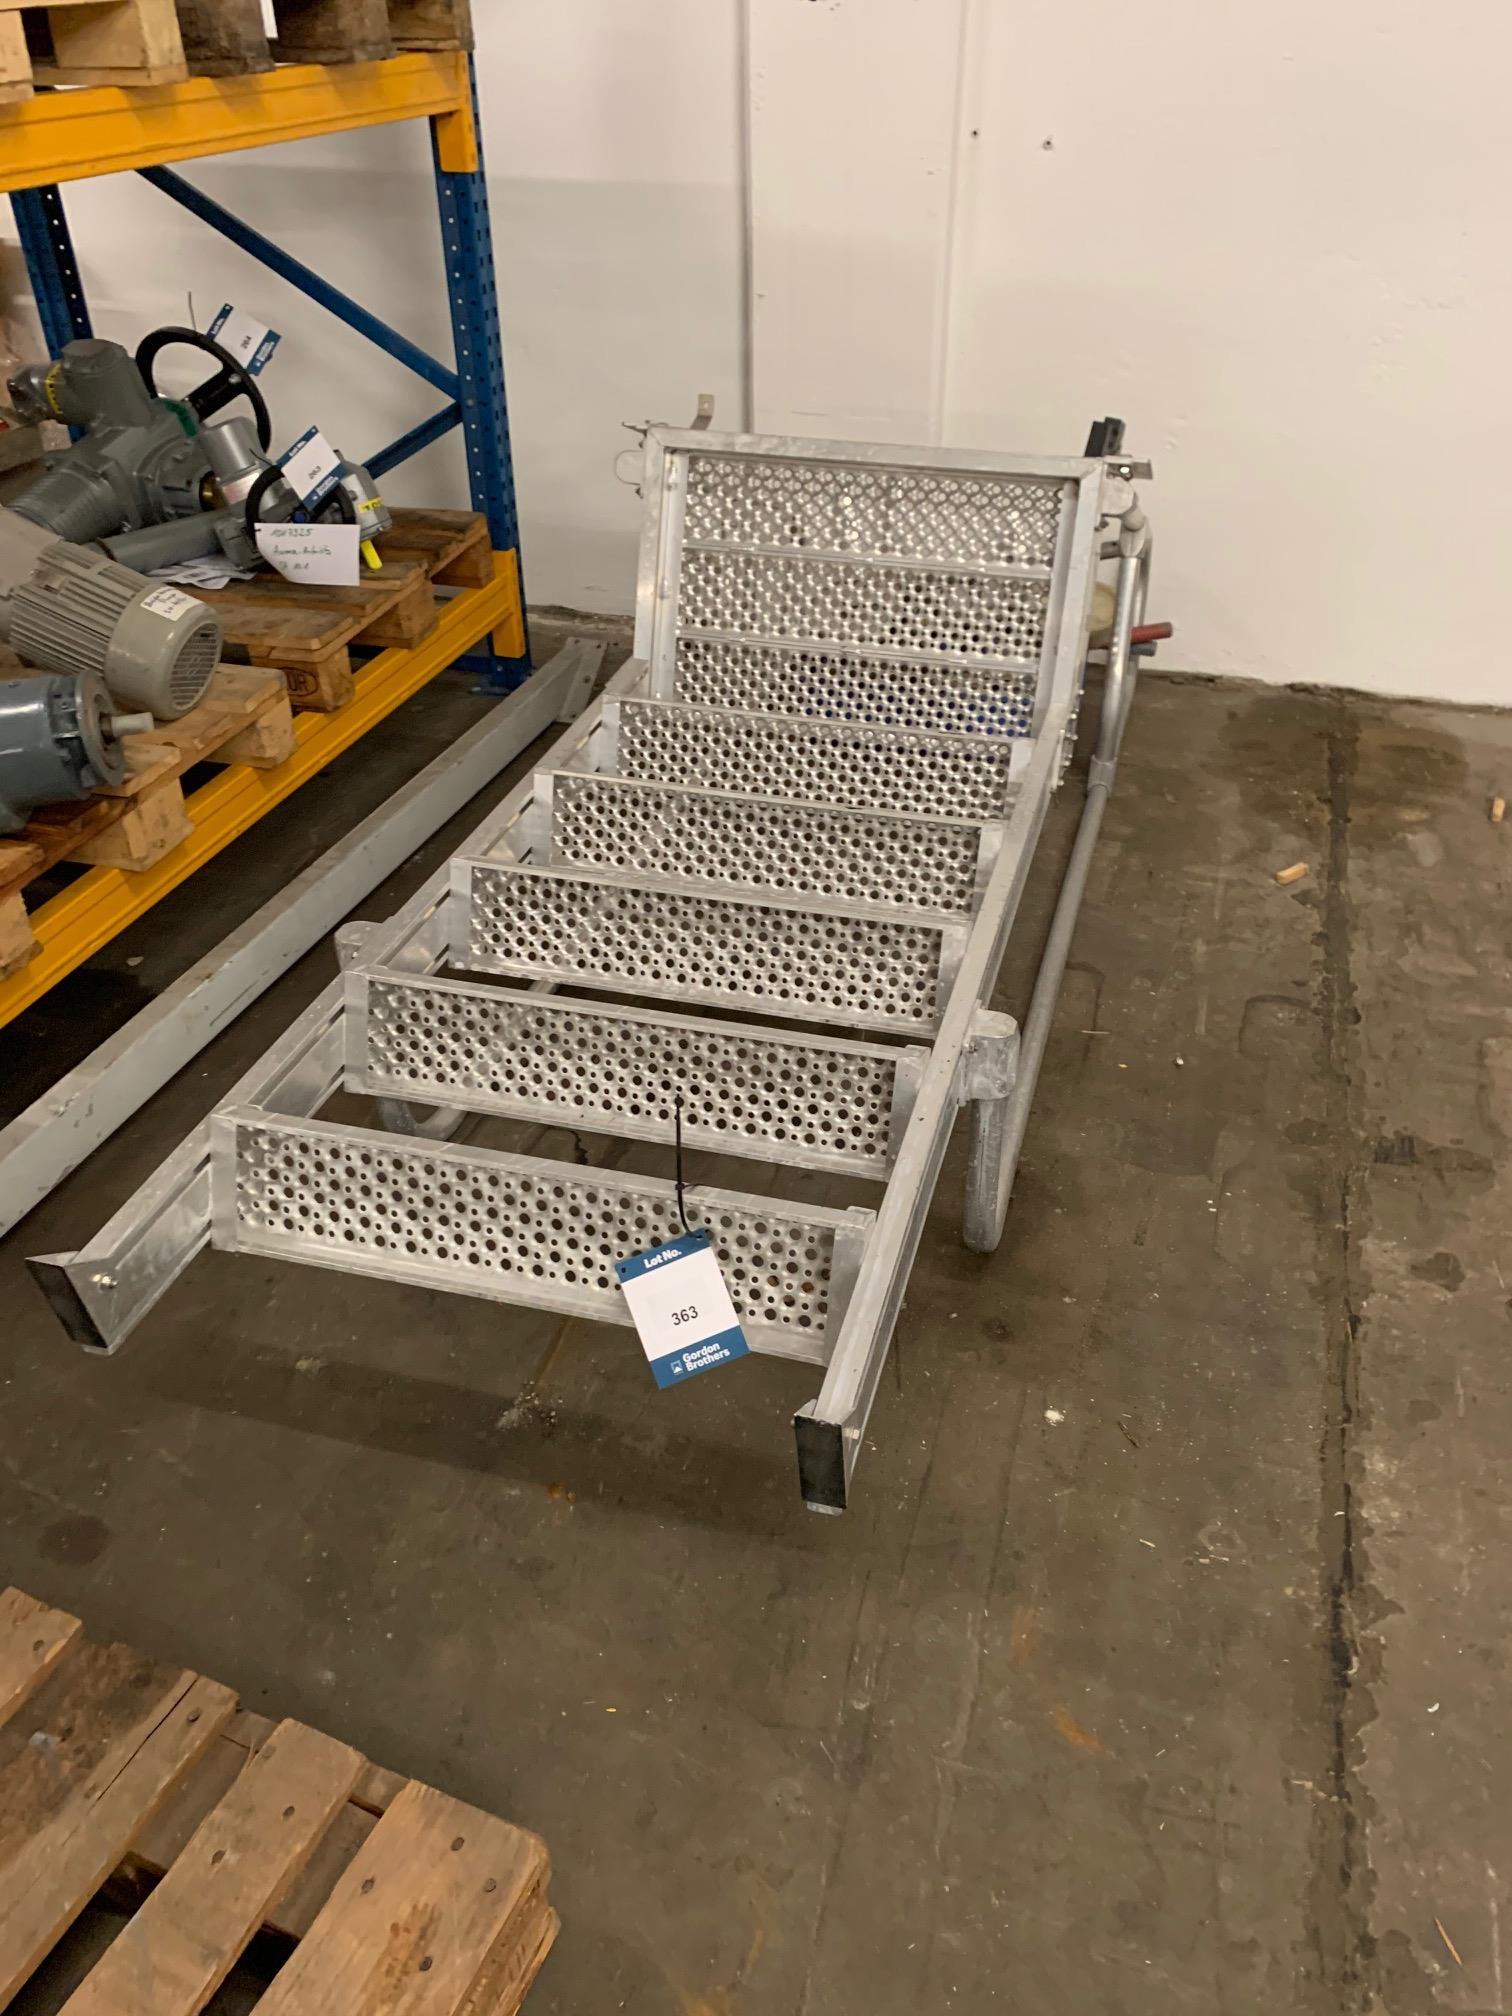 Lot 363 - 1 x Aluminum ladder incl. box with 4 wheels.